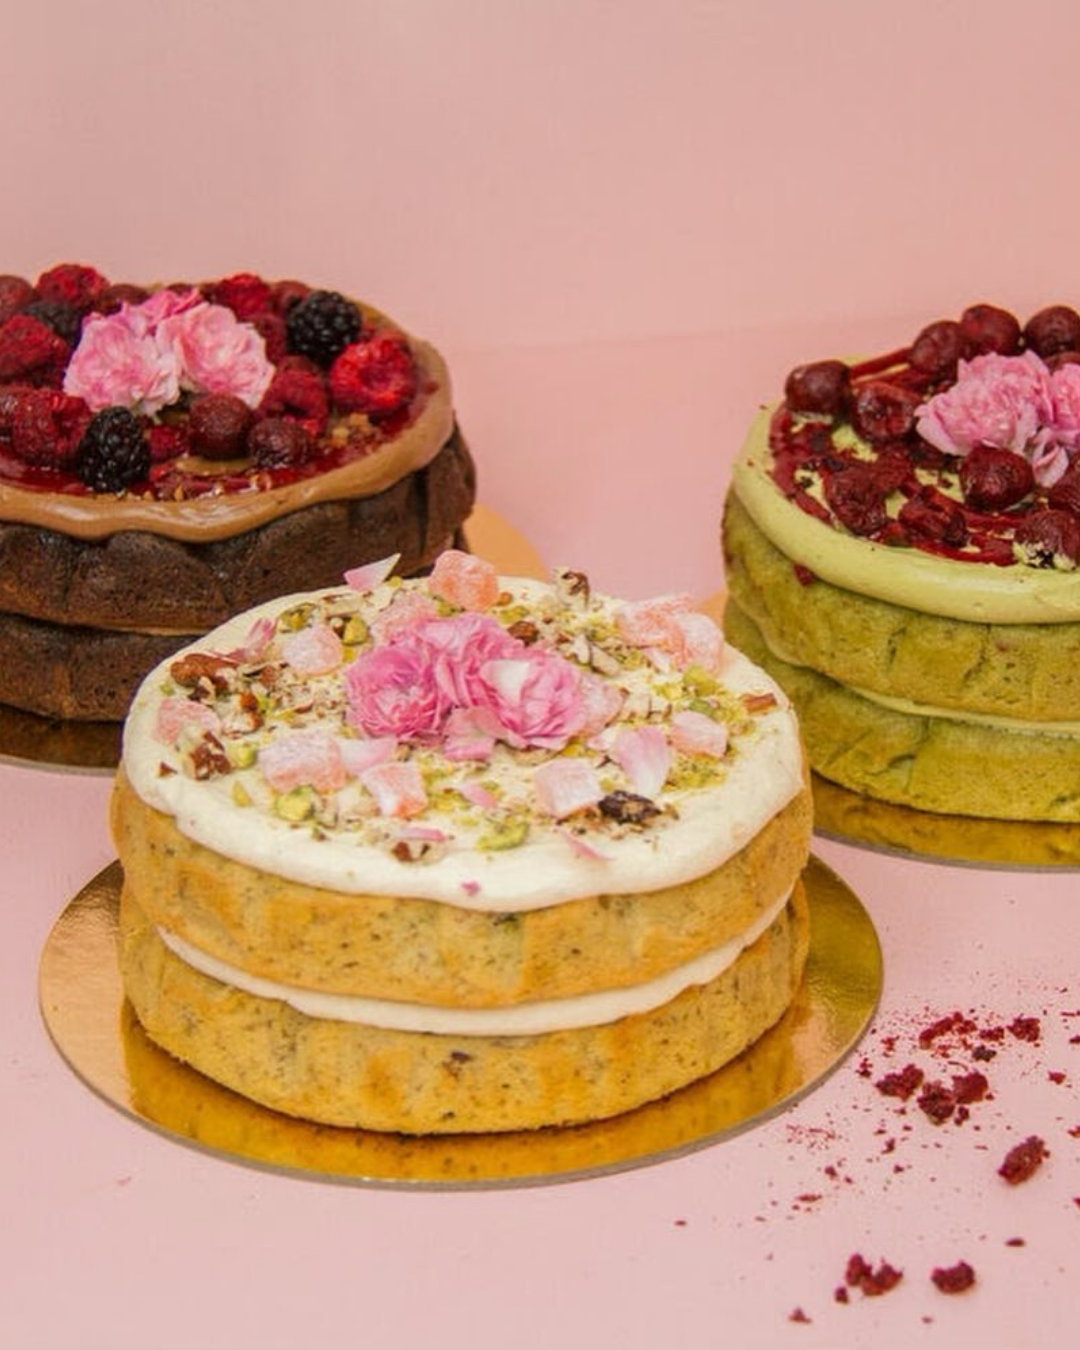 Three gorgeous cakes by The Caker on a pink background